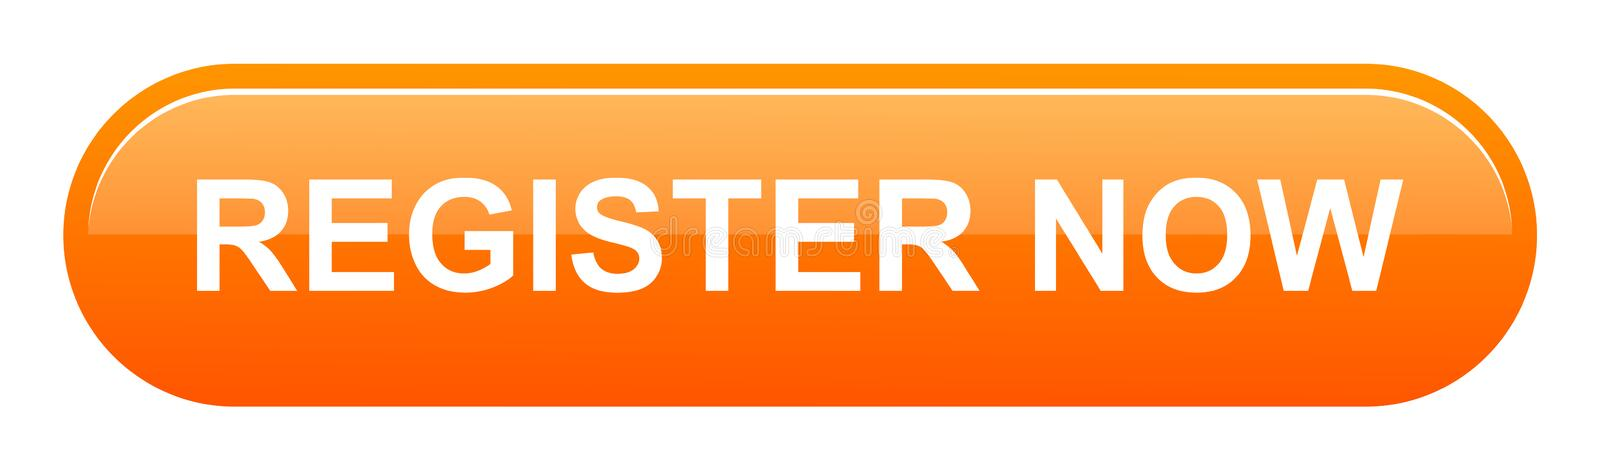 Register now button vector illustration